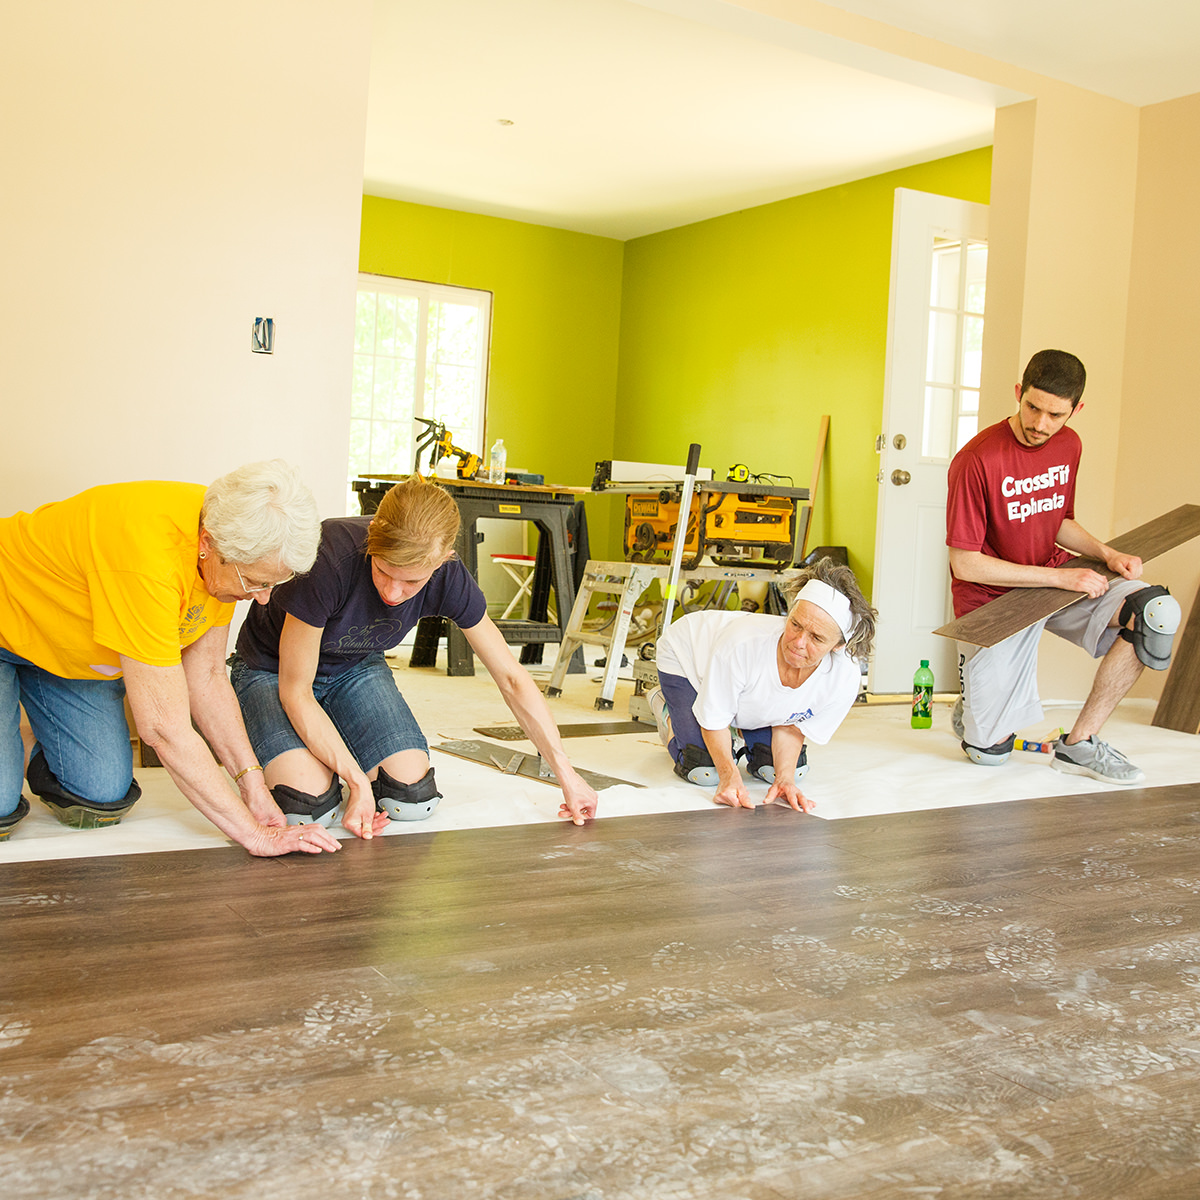 Team members and resident from Garden Spot Village helping to install flooring in house on Travel With Purpose Mission Trip with Garden Spot Village.